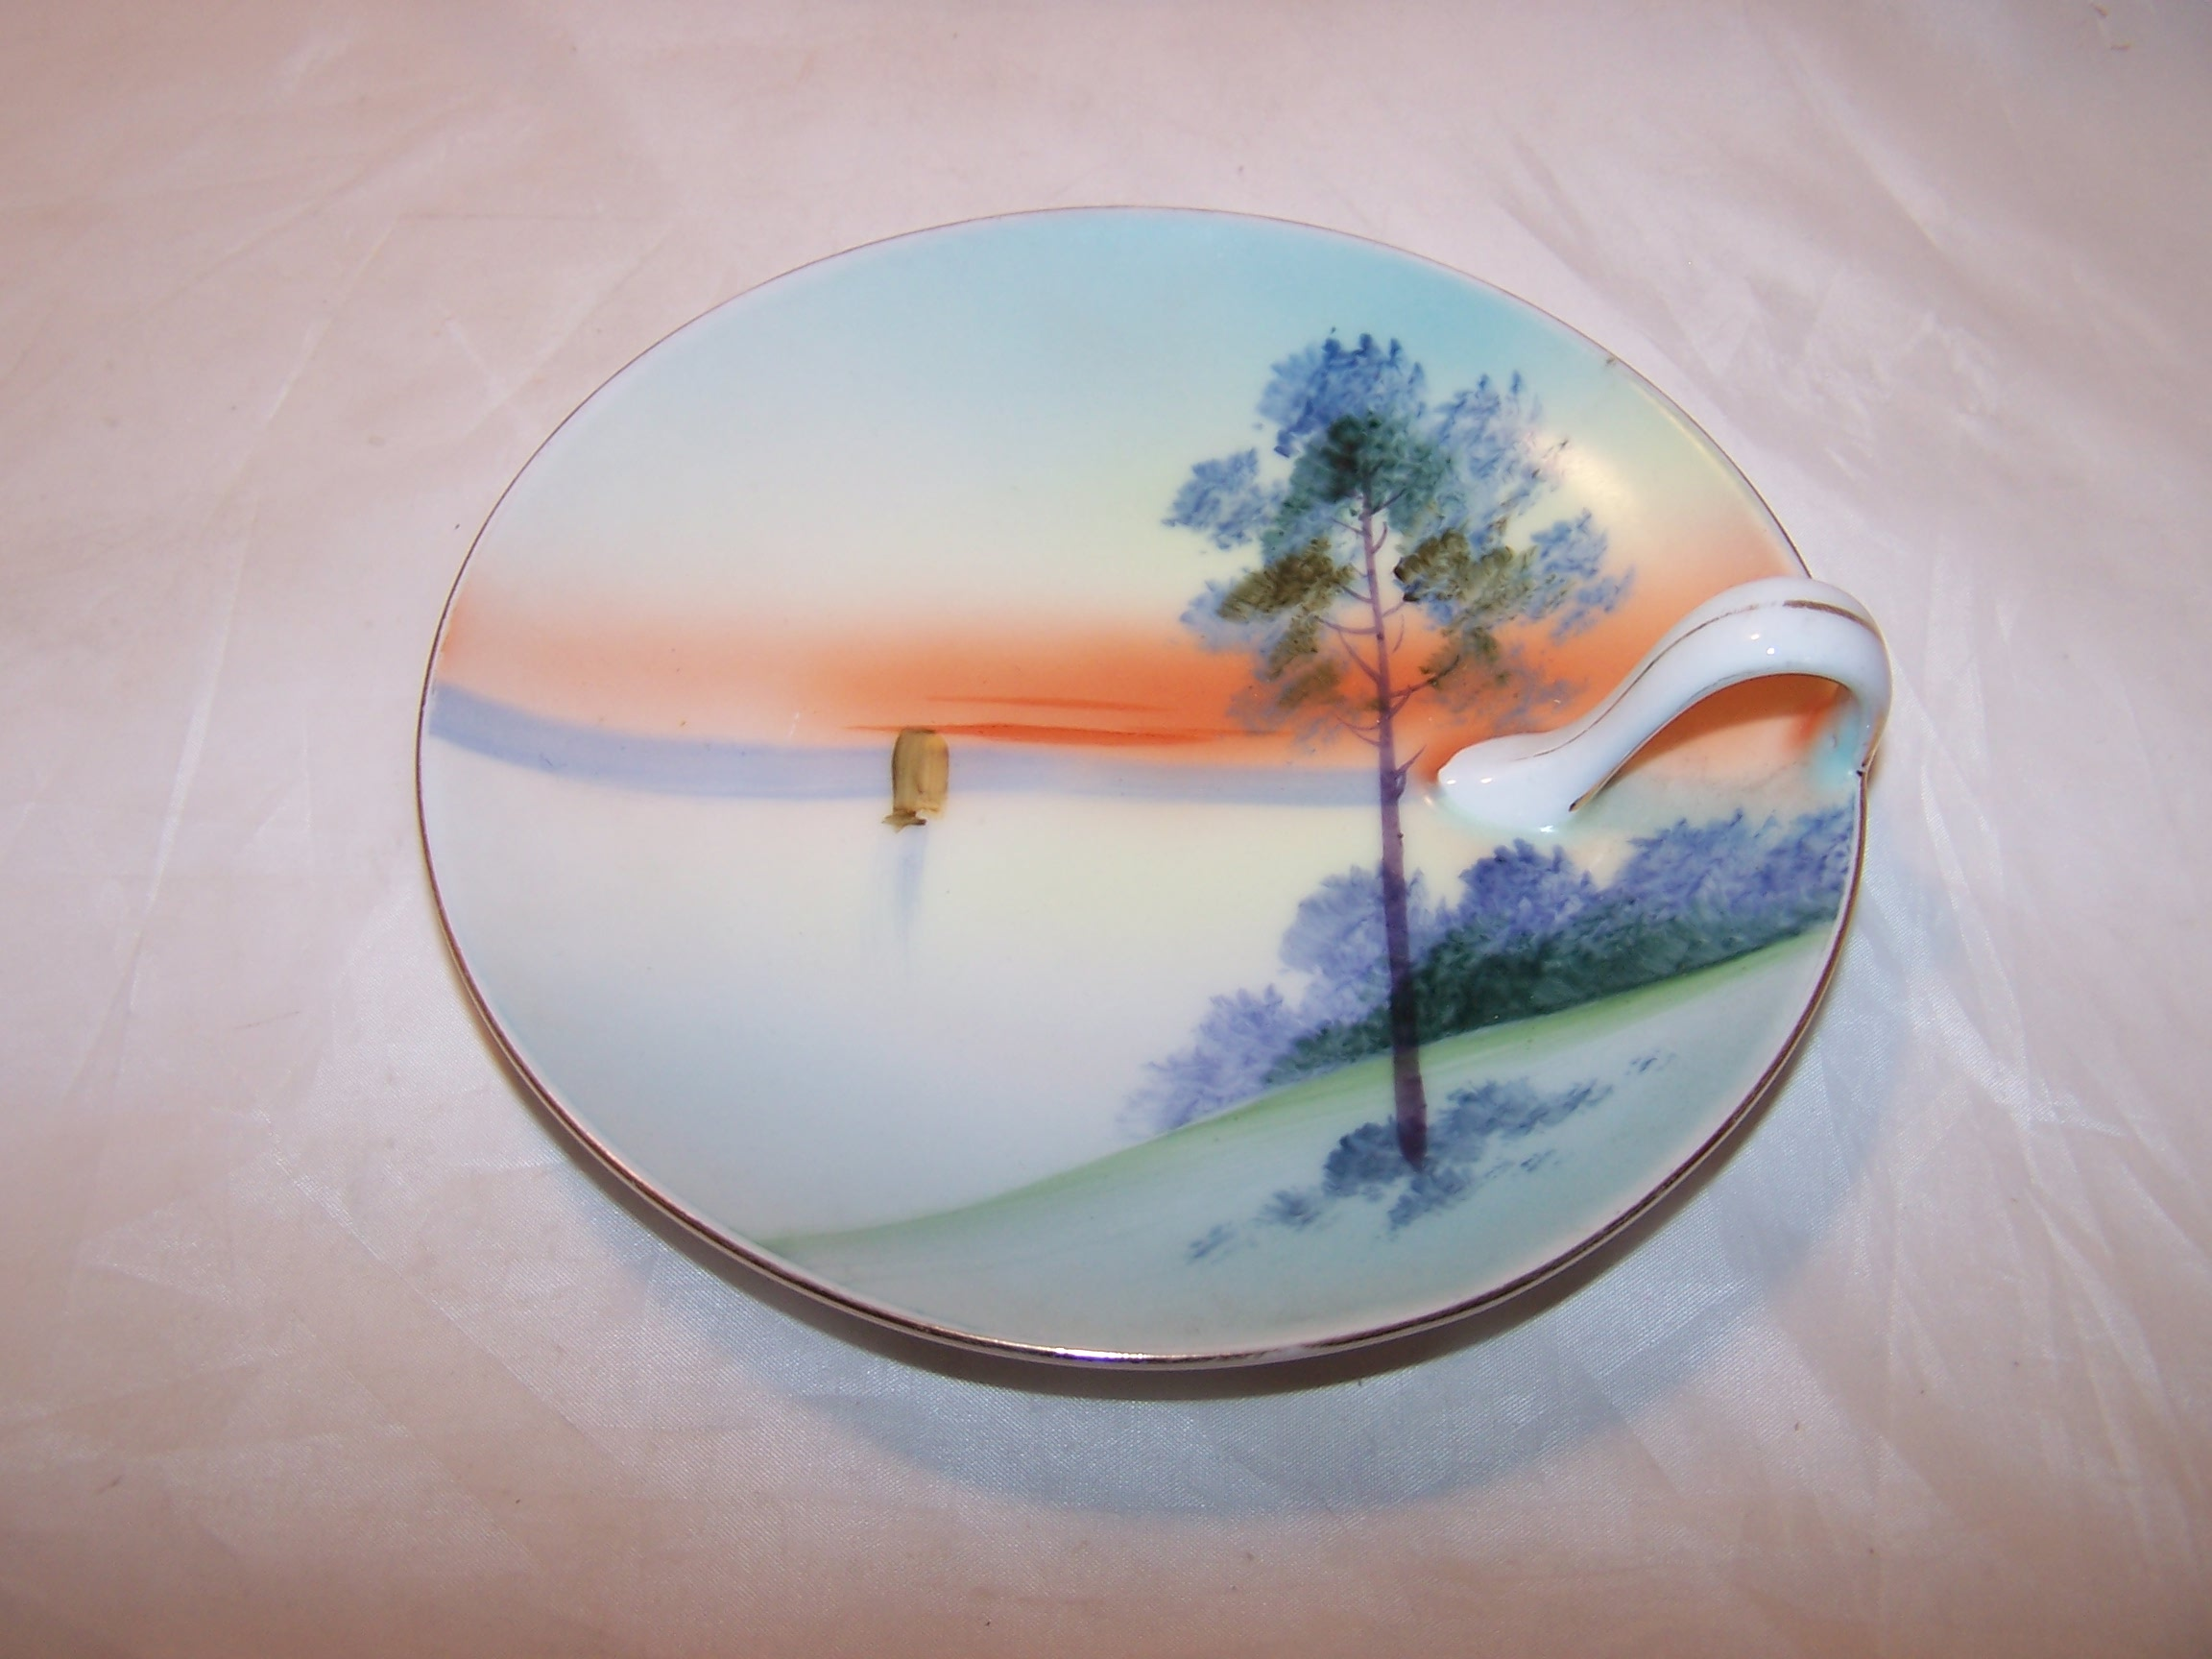 Image 3 of Meito China Lemon Server Plate, Hand Painted, Japan